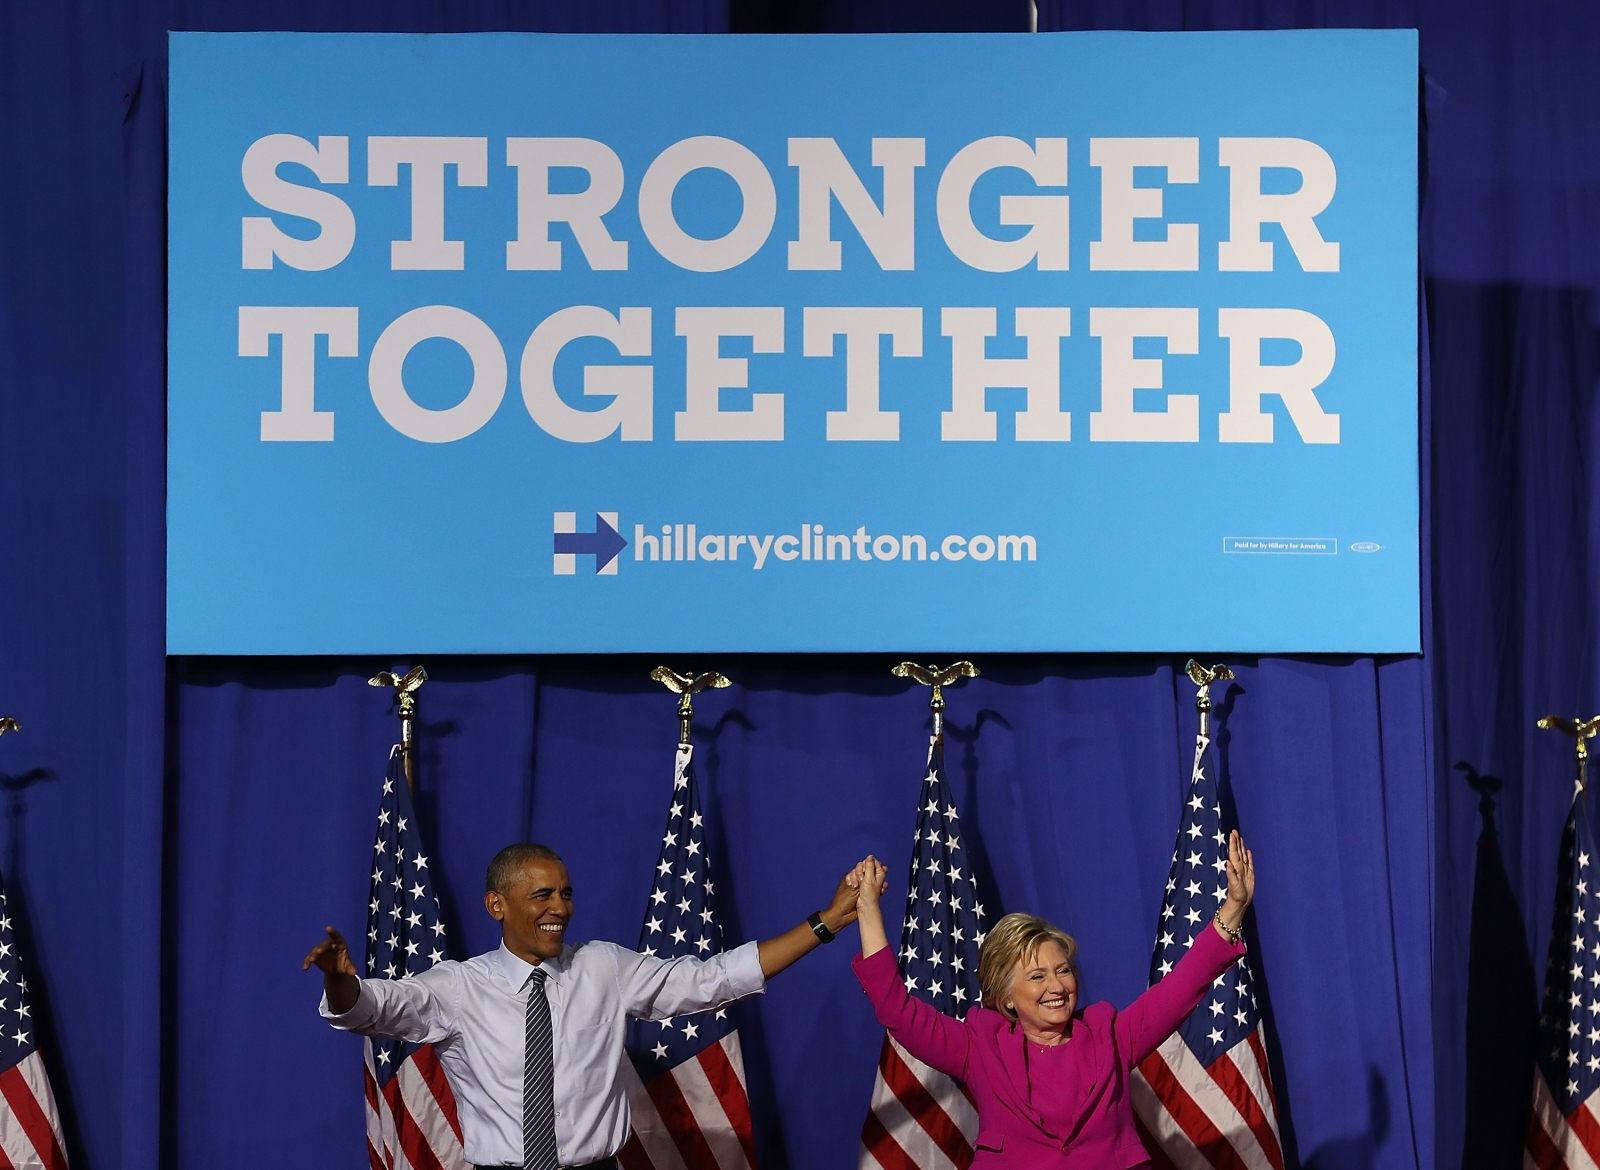 Hillary Clinton and Barack Obama